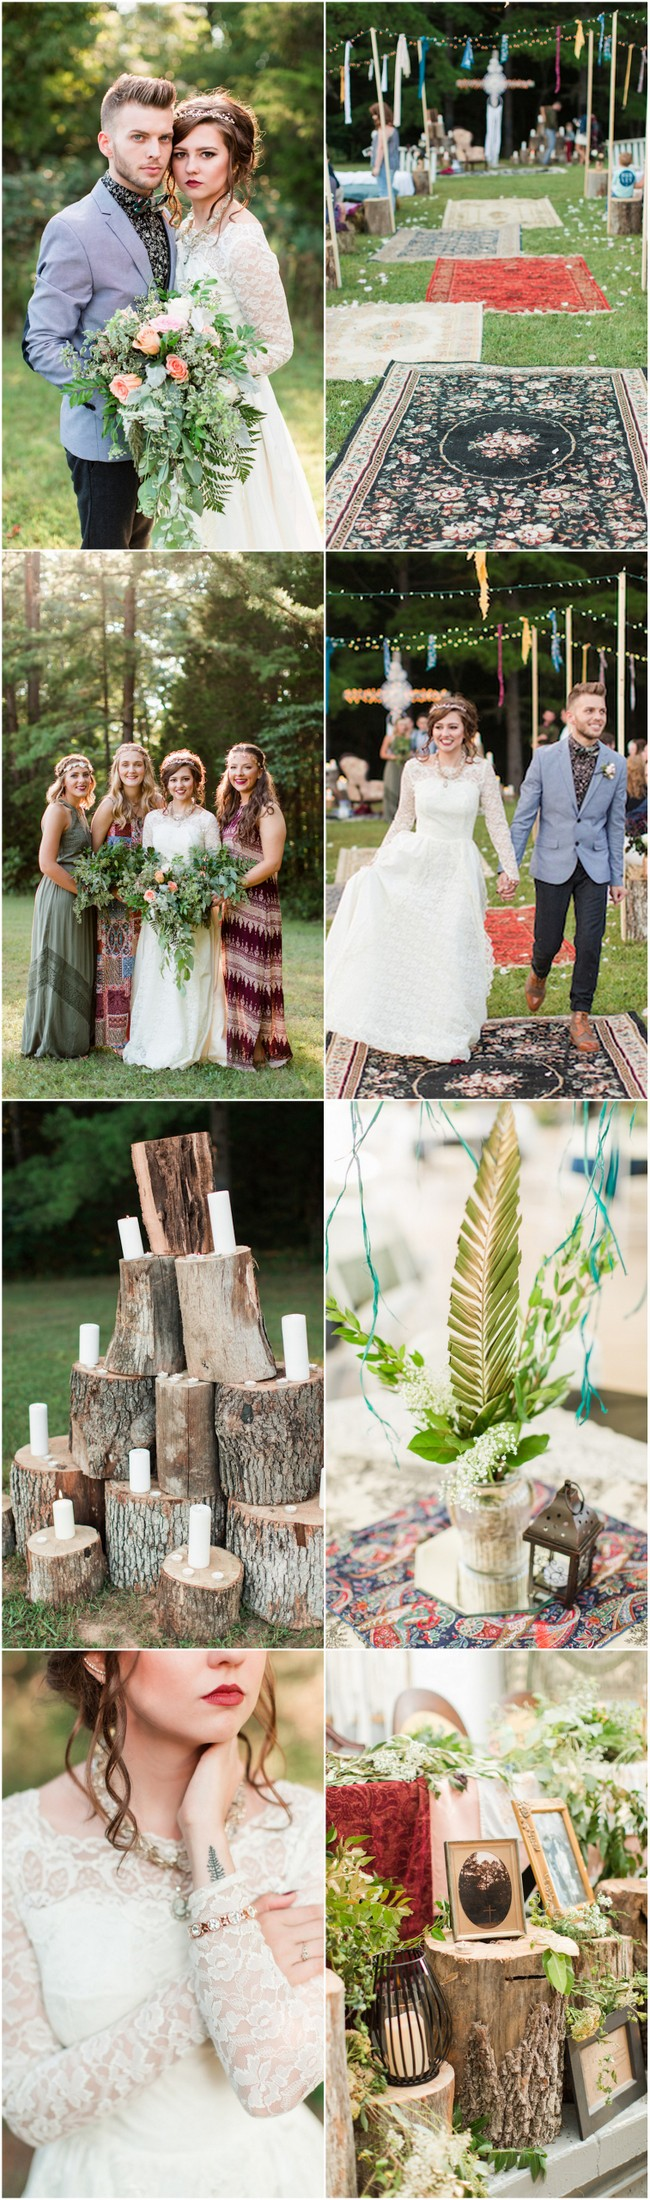 Their boho sunset campground wedding had doilies, dreamcatchers, mismatched rugs, tapestries, strings of twinkle lights overhead, candles & a Breaking Dawn inspired, vintage 1950s wedding dress!